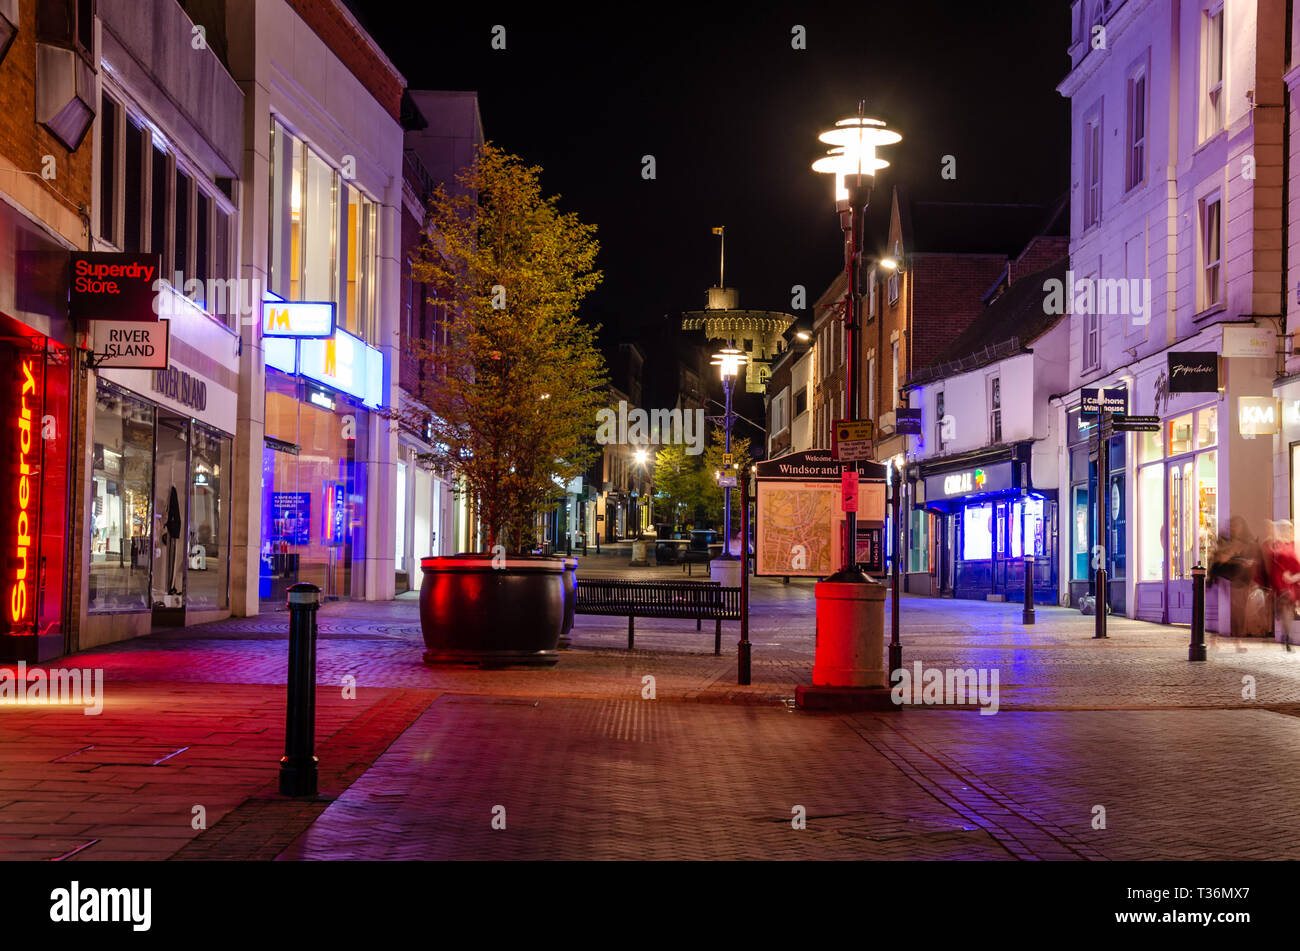 a-view-up-peascod-towards-windsor-castle-at-night-lights-from-shops-light-up-the-street-in-a-multicolored-glow-T36MX7.jpg